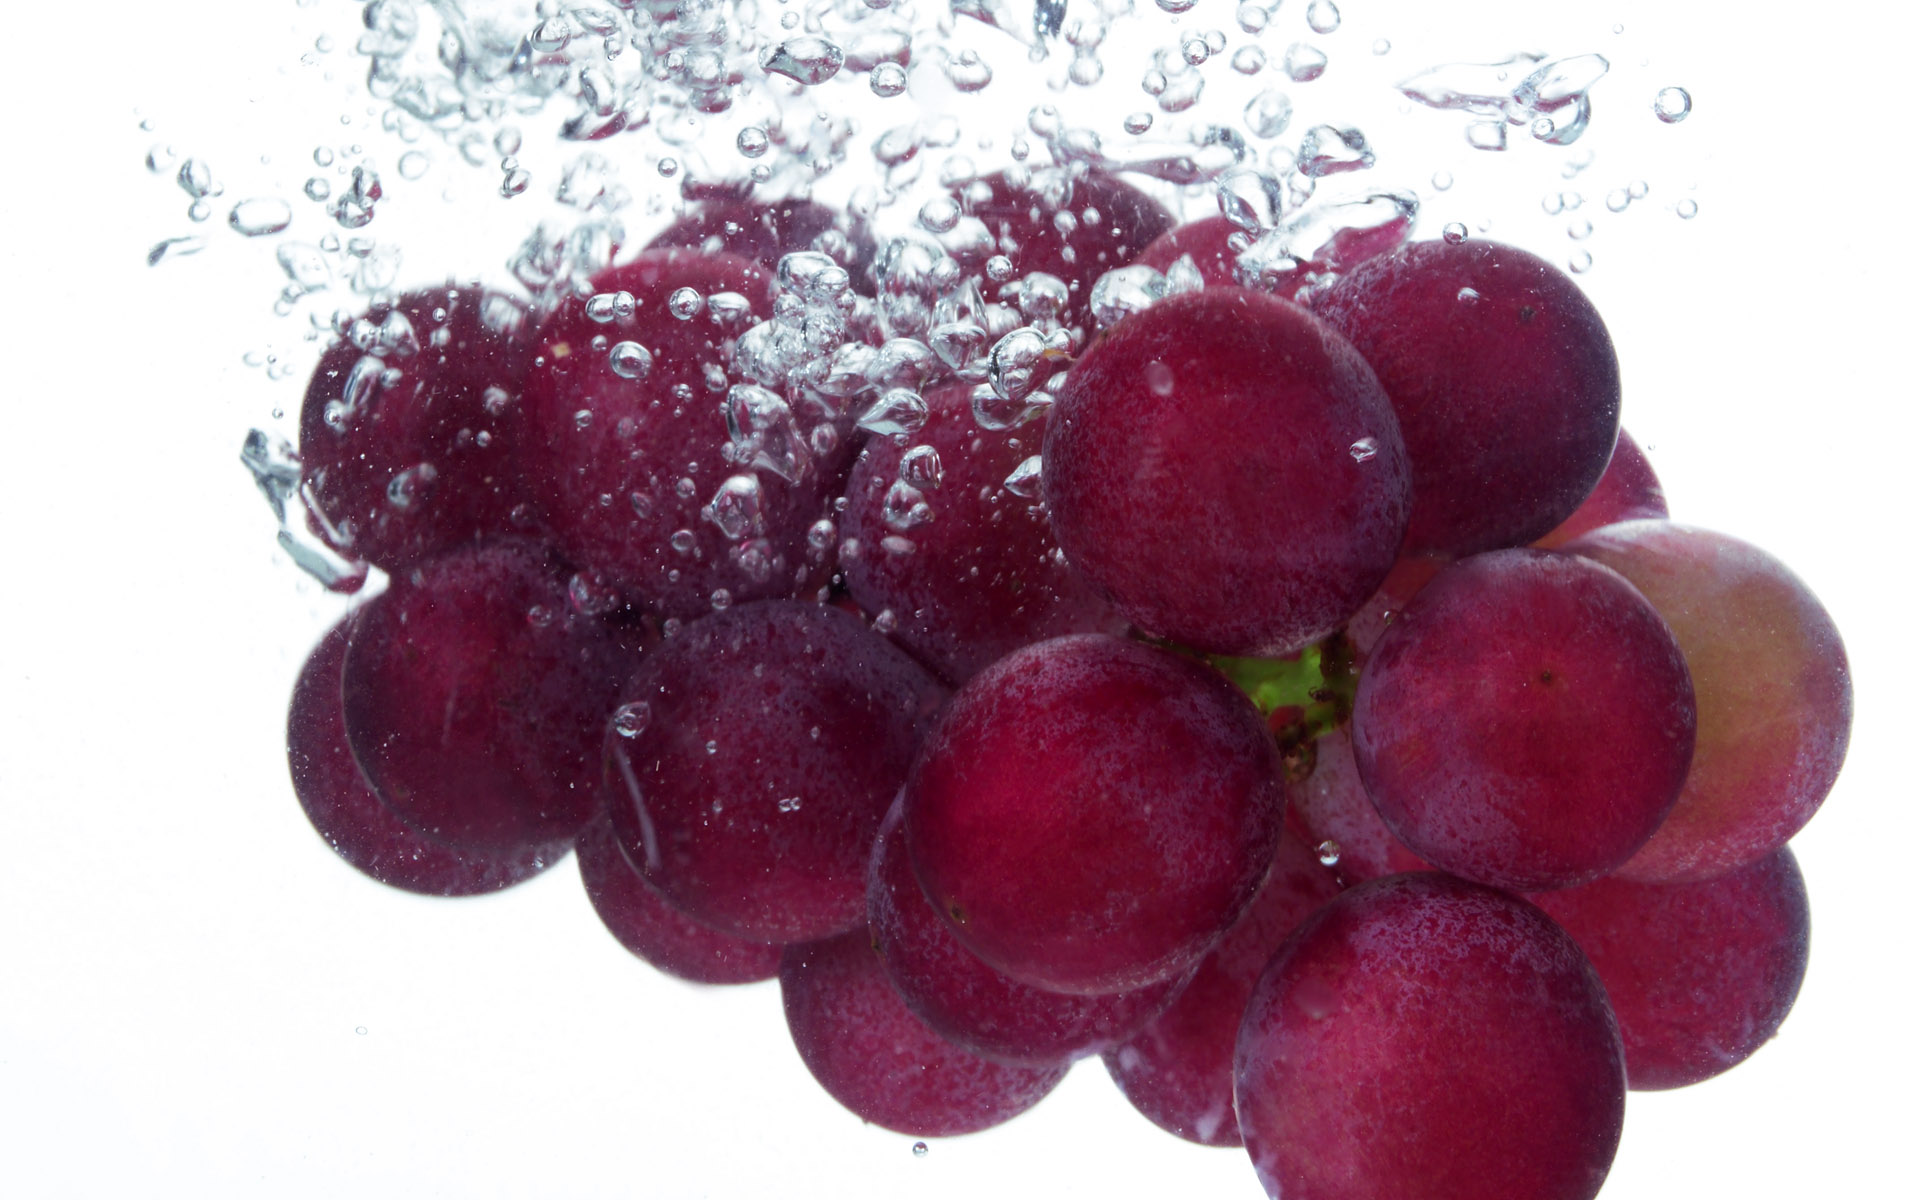 Water Grape HD Wallpaper Others Wallpapers 1920x1200